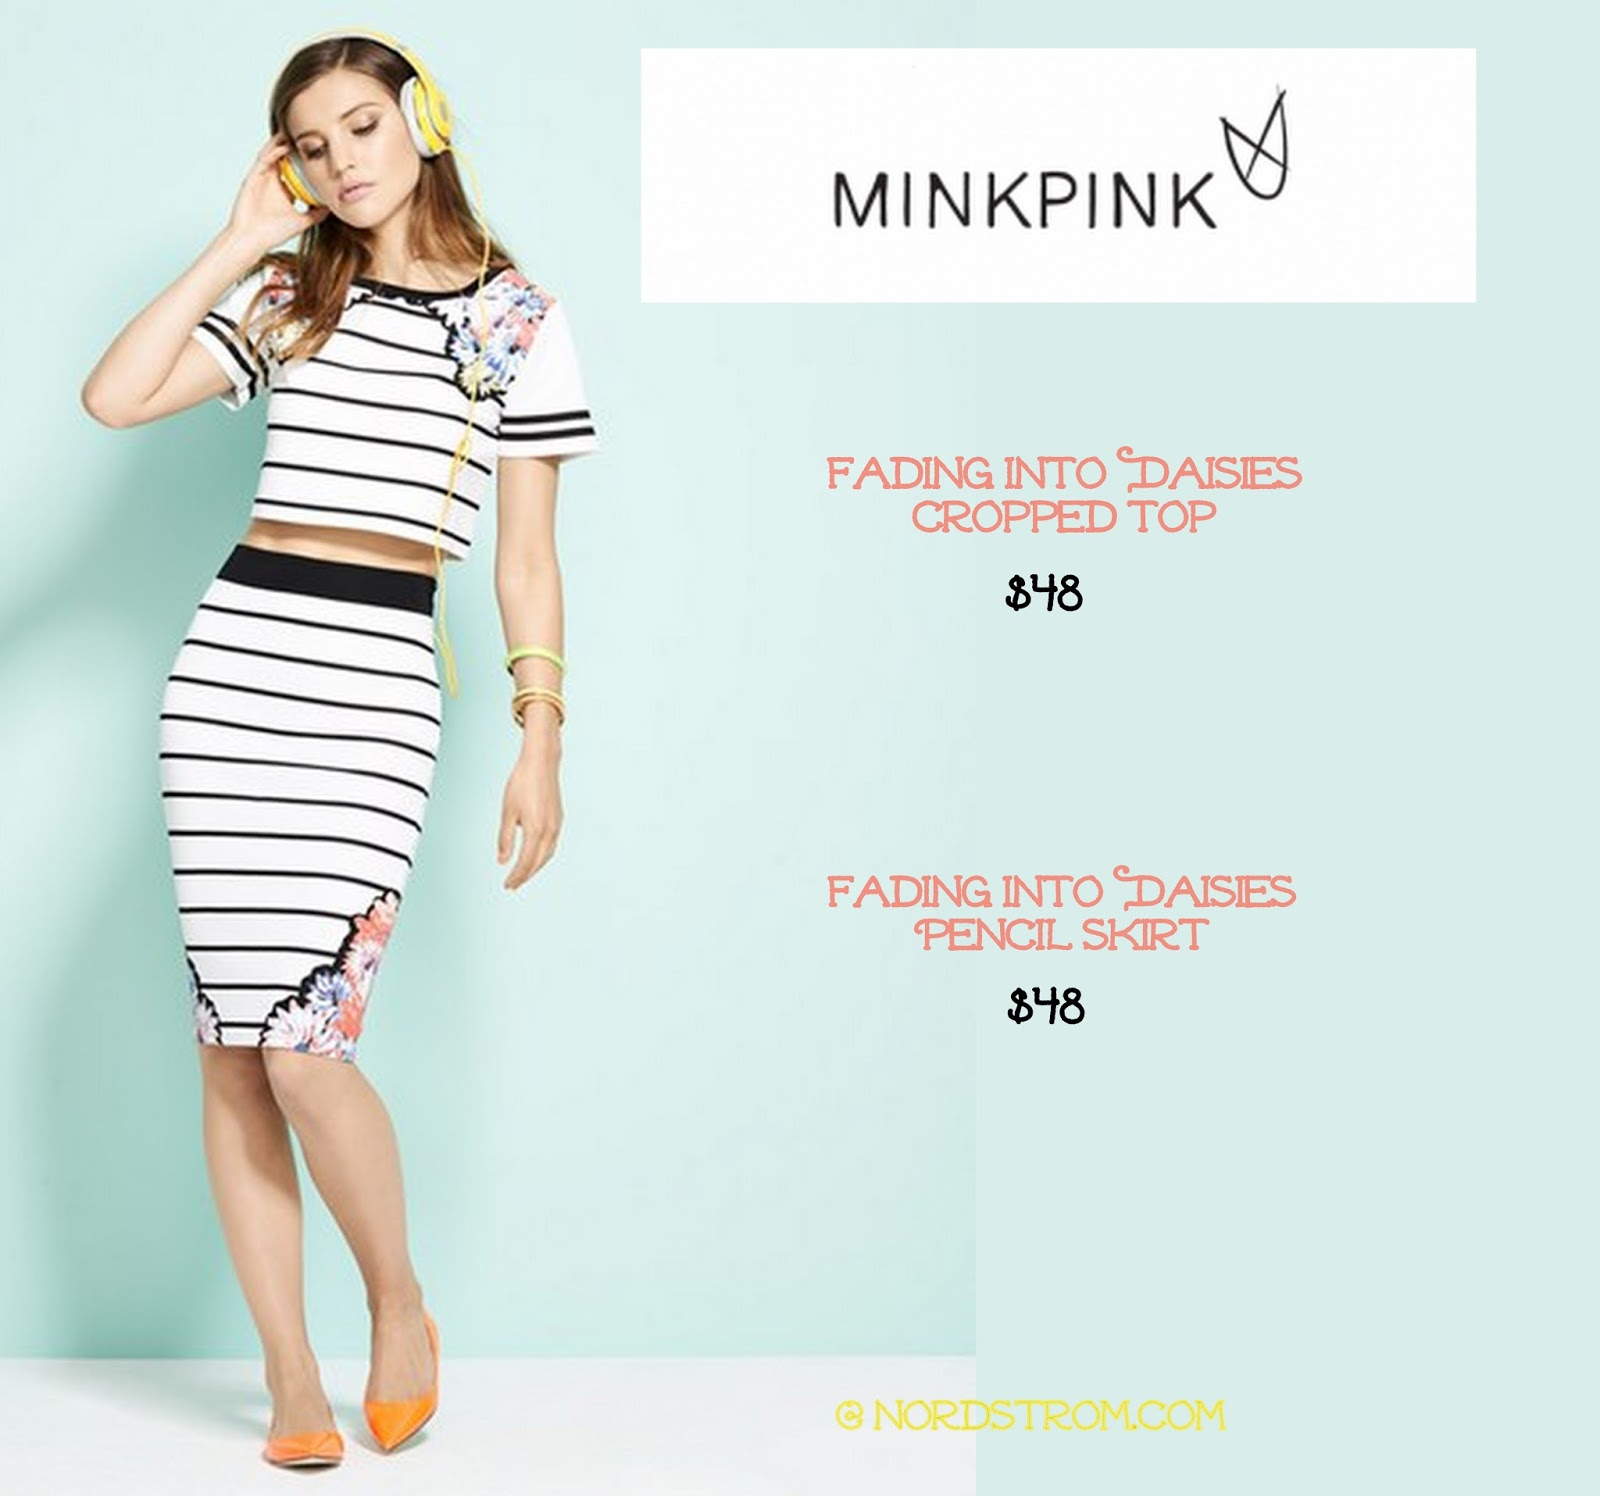 a5e7abe9b8c The Minkpink  Fading into Daisies  cropped striped and floral top and  matching skirt are both available at Nordstrom.com for  48 a piece.